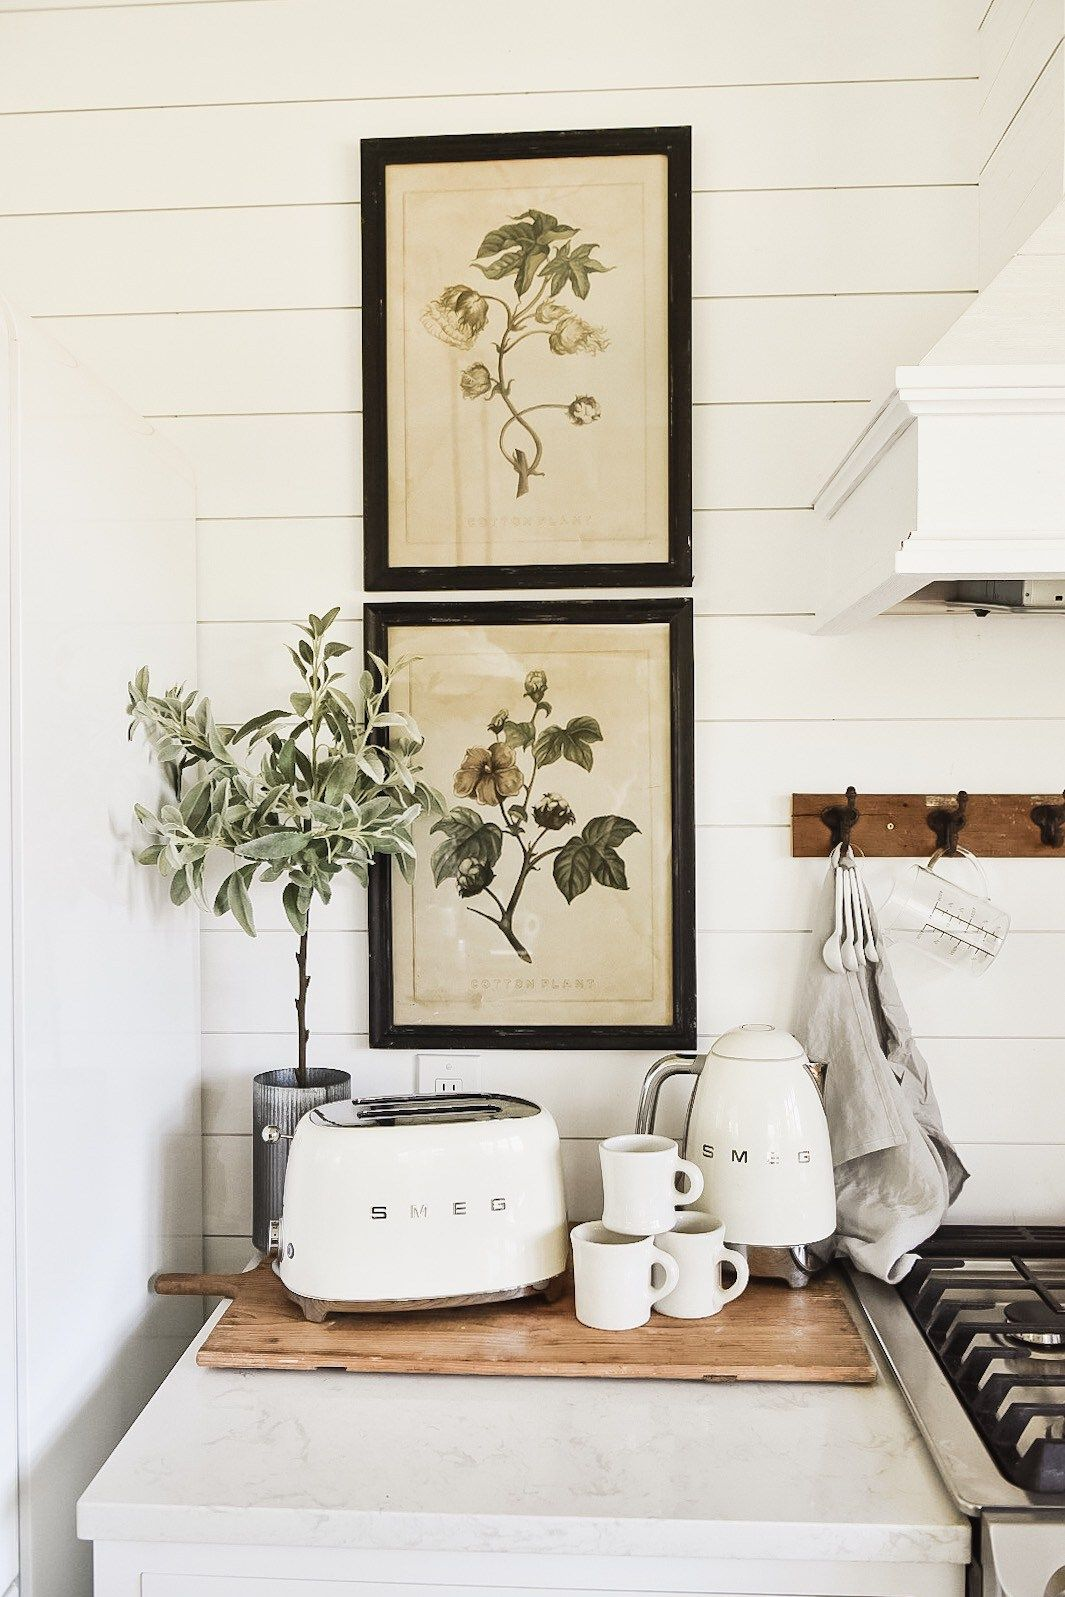 New art in the kitchen cottage style pinterest big thing